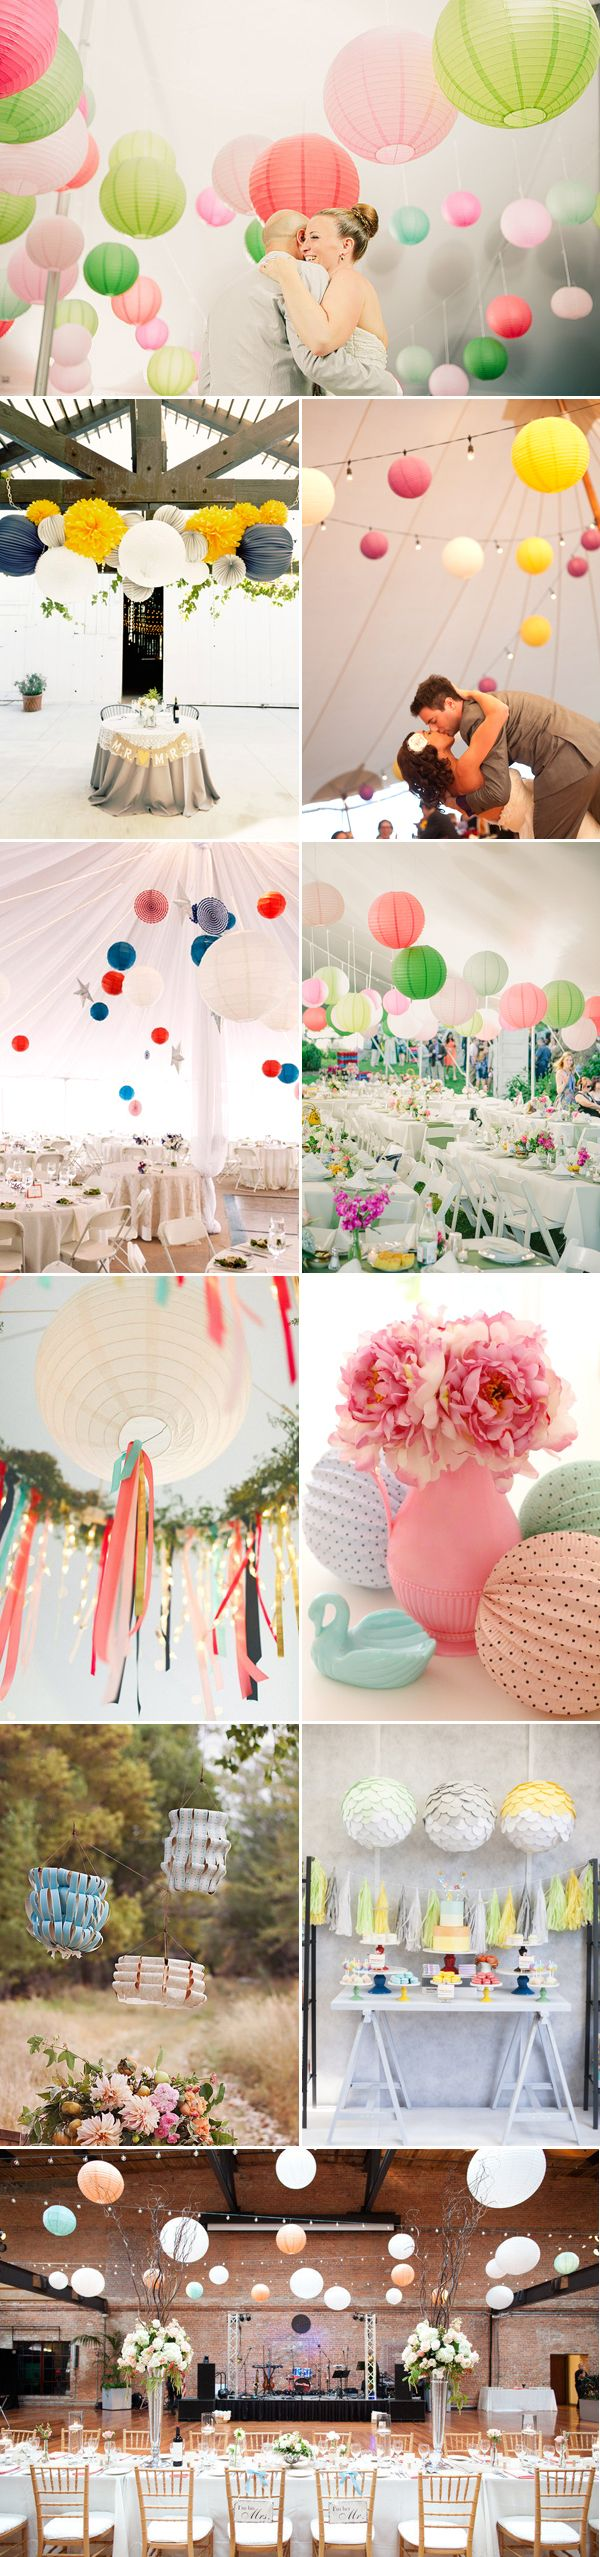 21 Lantern Wedding Decor Ideas - Colorful - MG Evénements Ile de Ré - mariage - Décoration sous chapiteau - lanterne - lampions